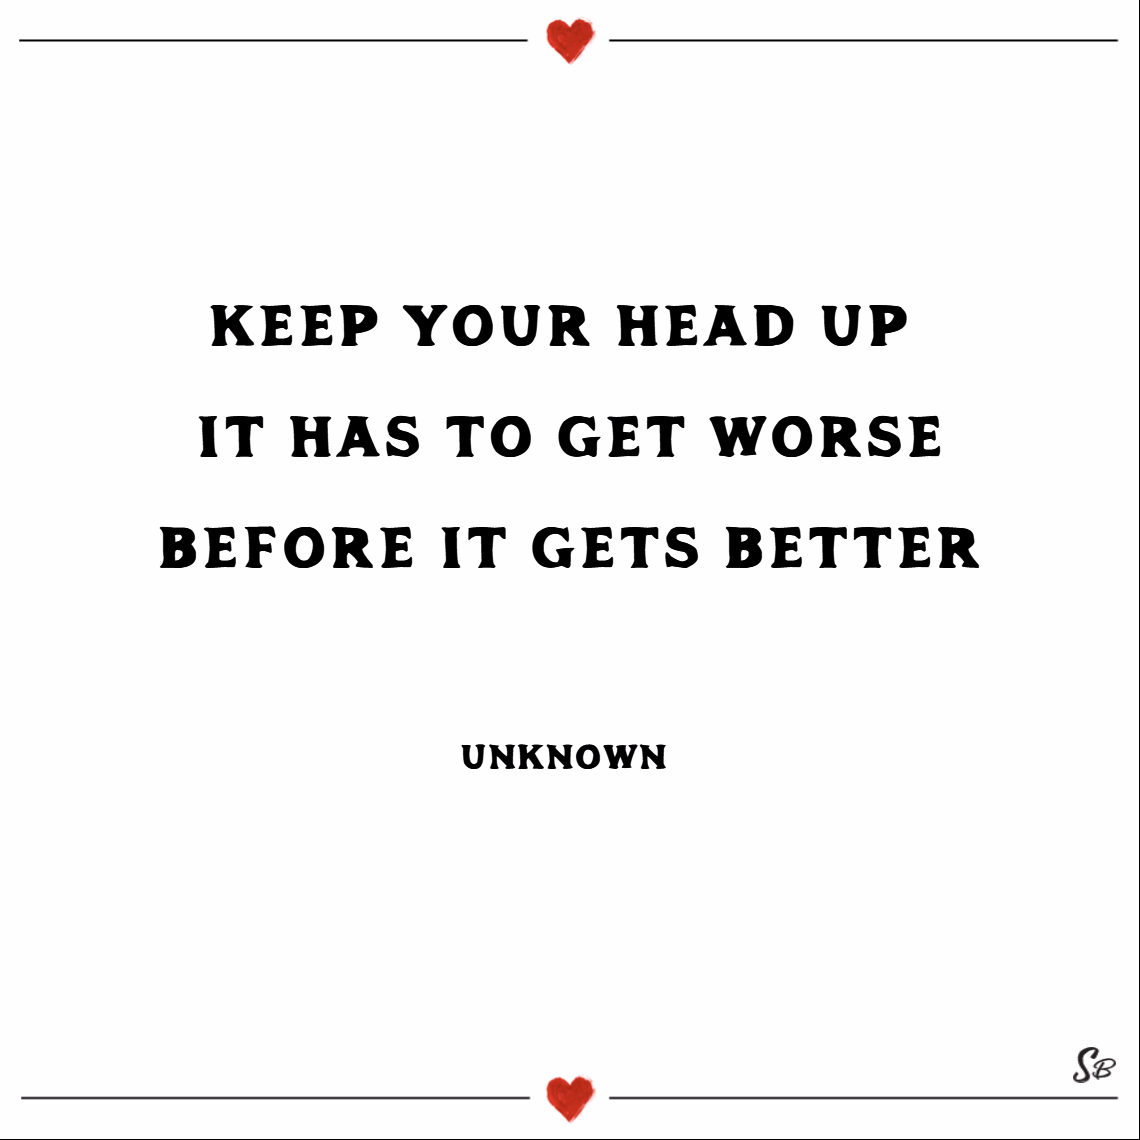 Keep your head up. it has to get worse before it gets better. – unknown